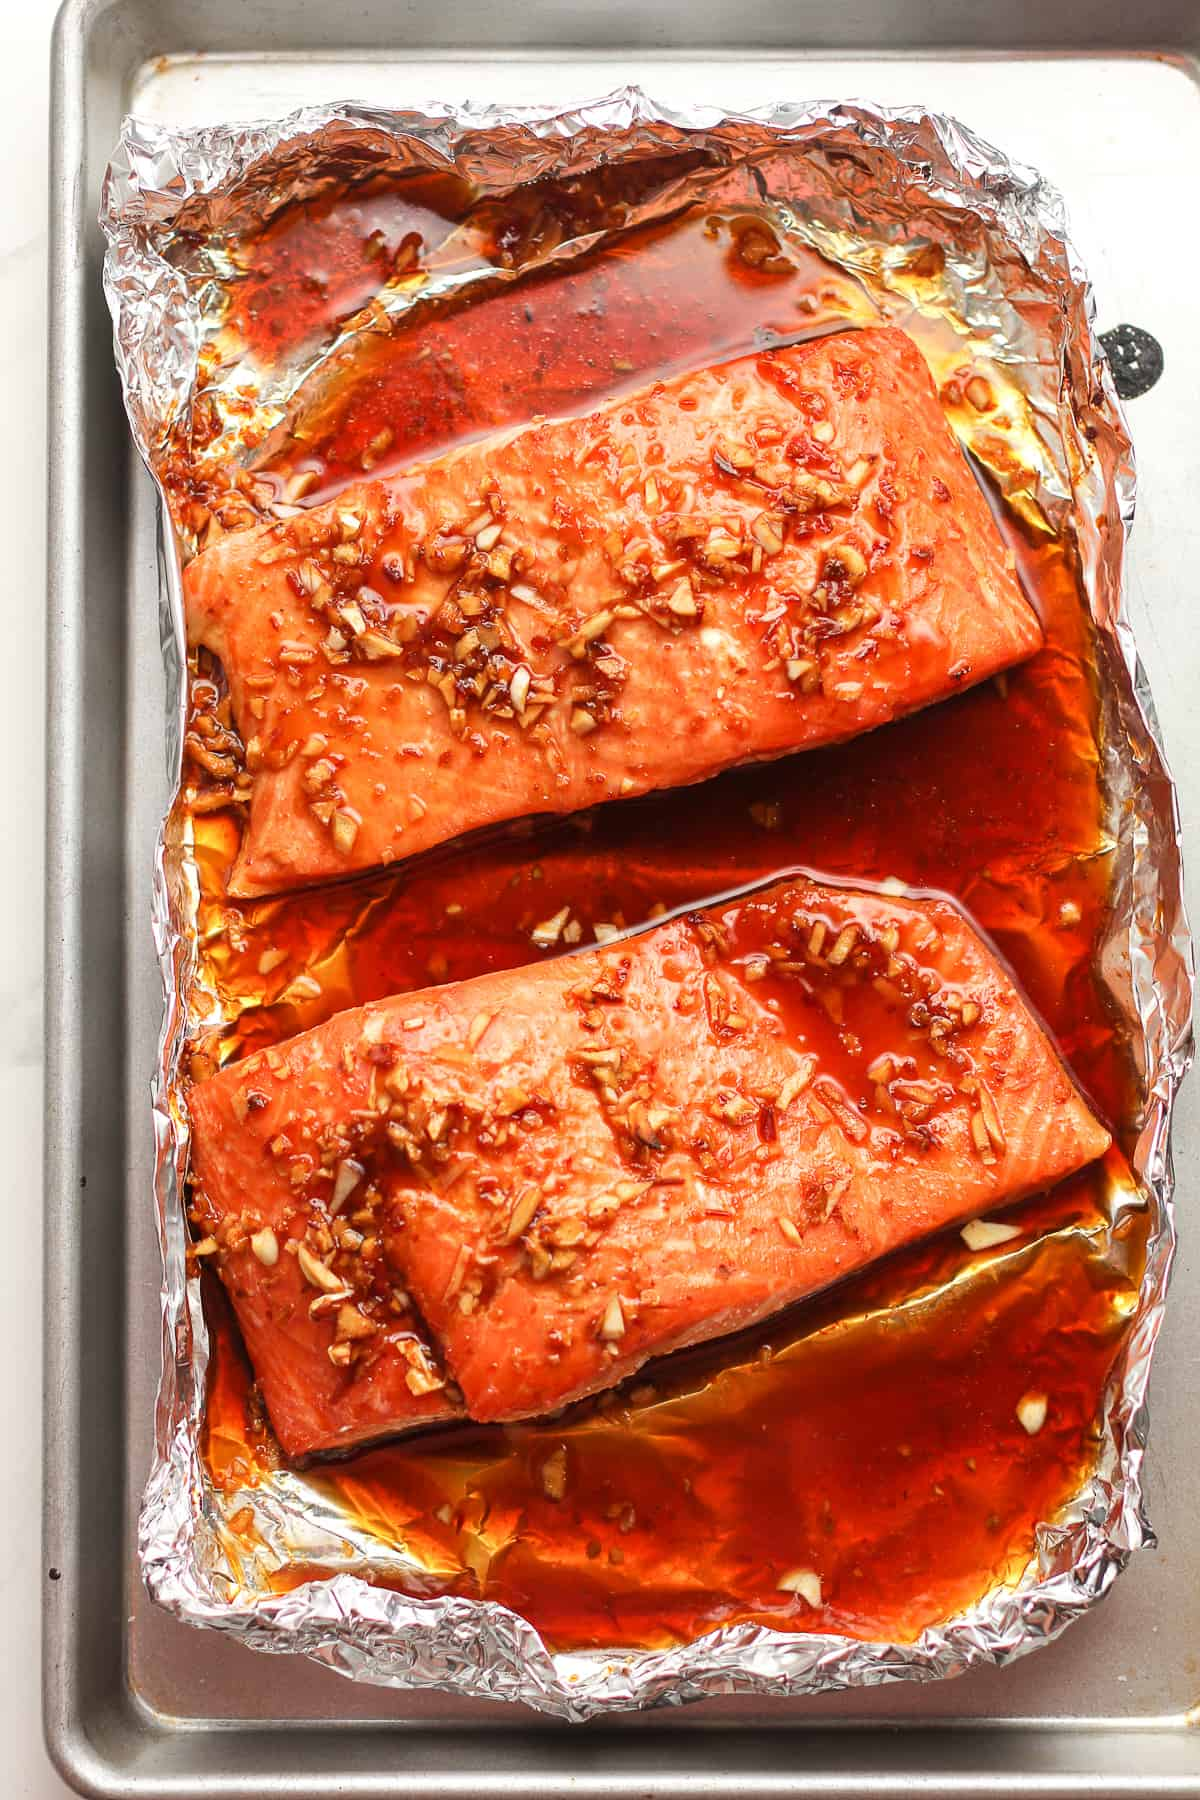 Overhead shot of two large pieces of baked salmon in foil.